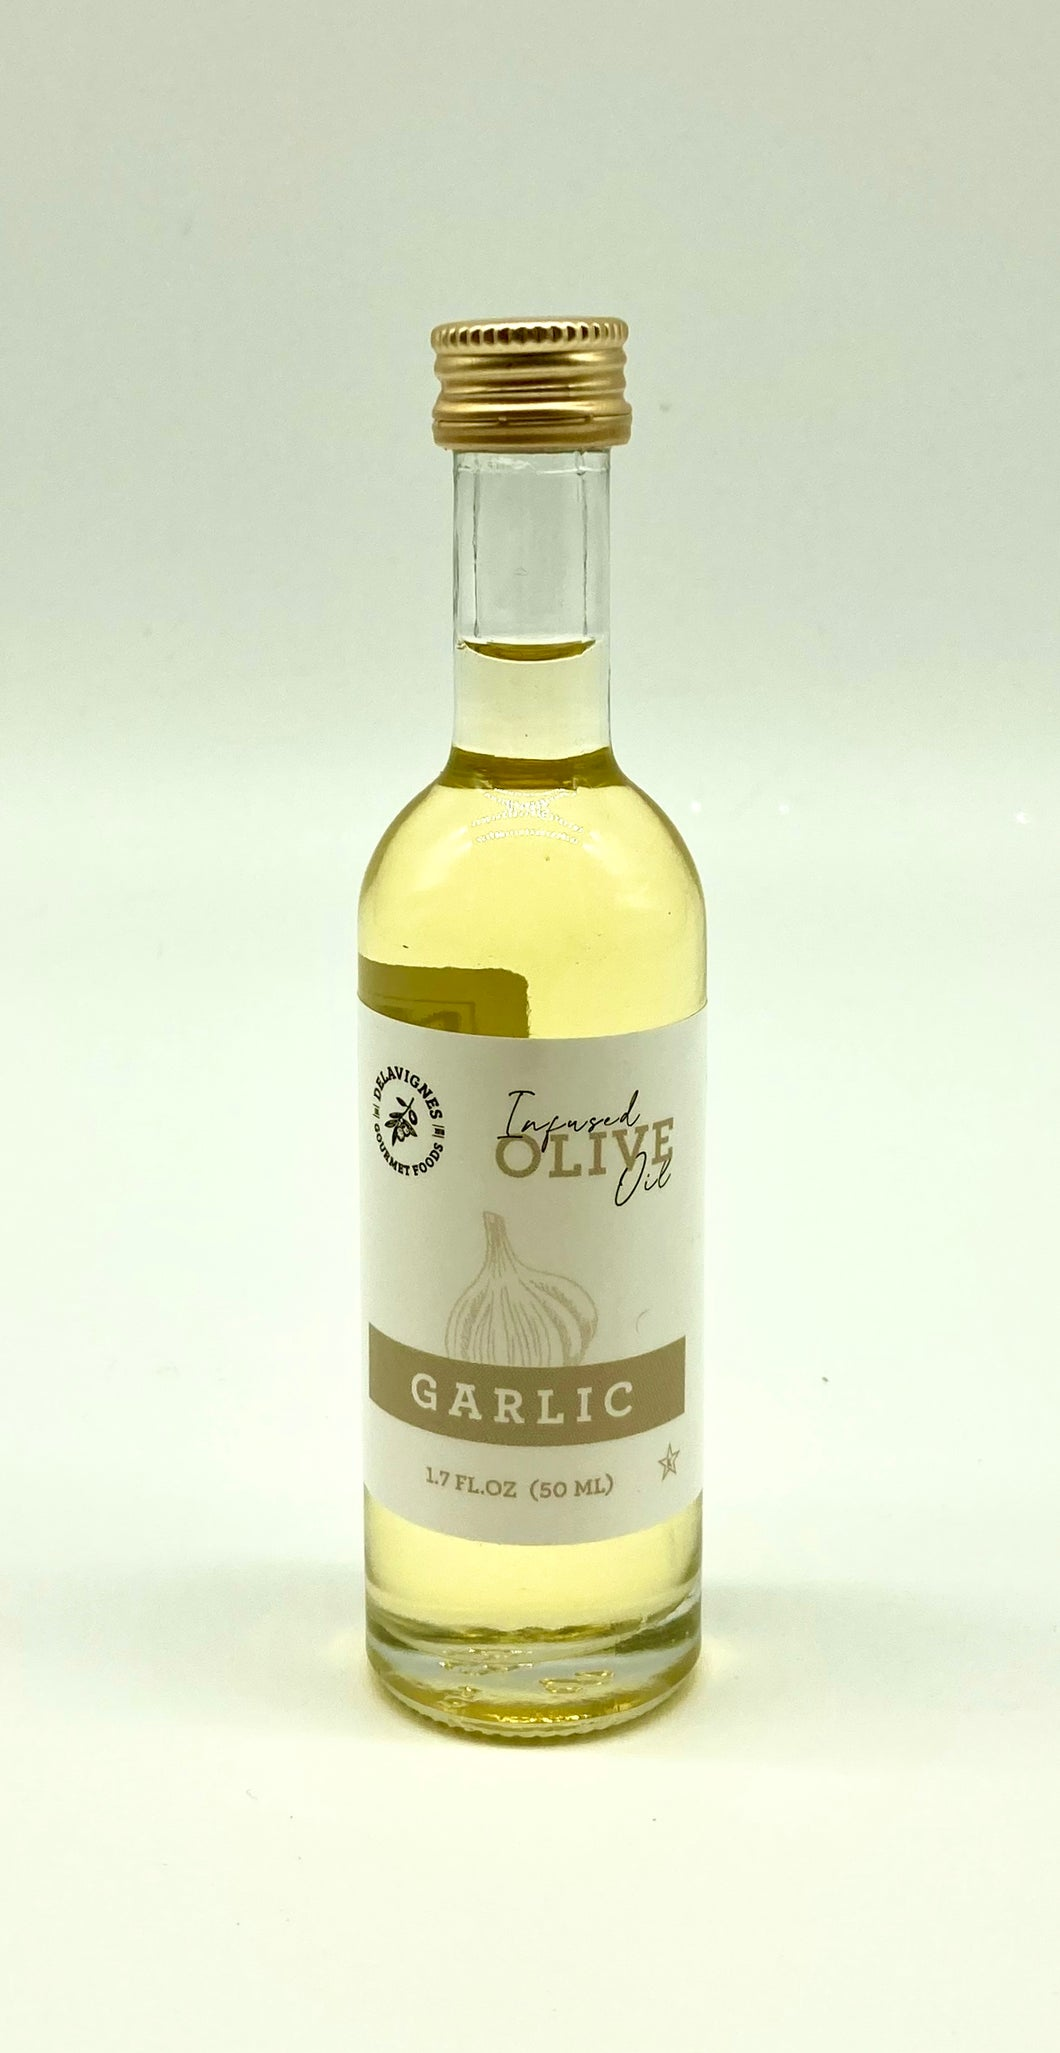 Garlic Infused Olive Oil 1.75oz